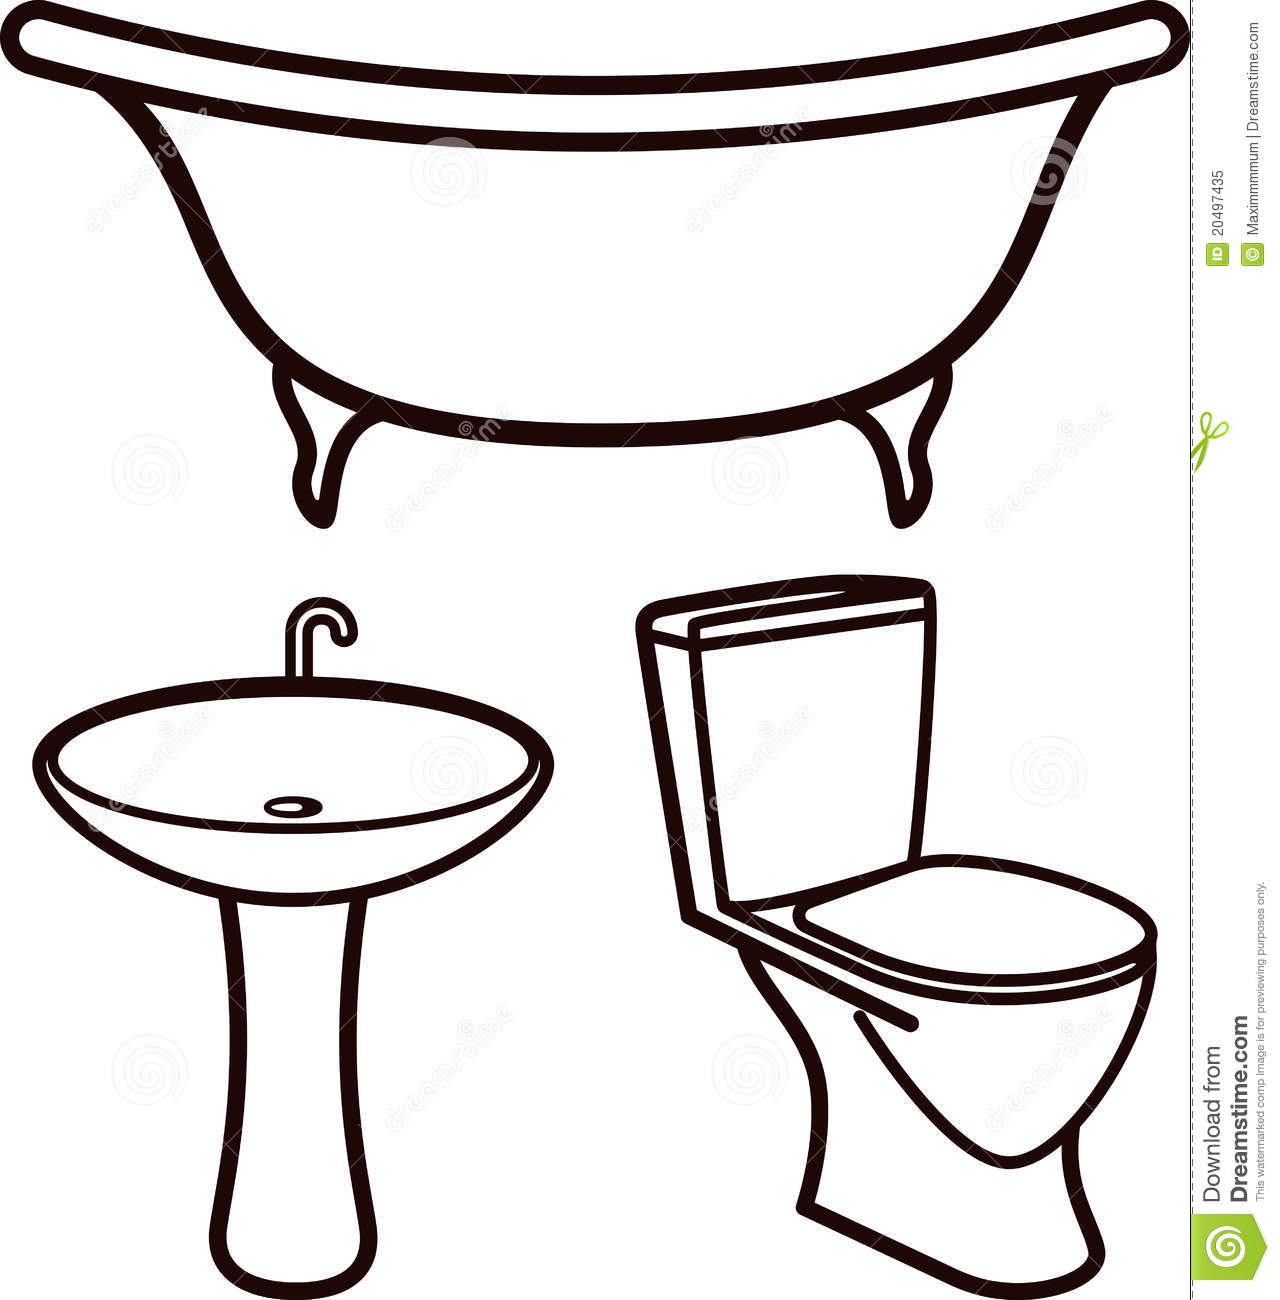 Bathroom Clip Art Black And White: Bathroom Sink Clipart 20 Free Cliparts